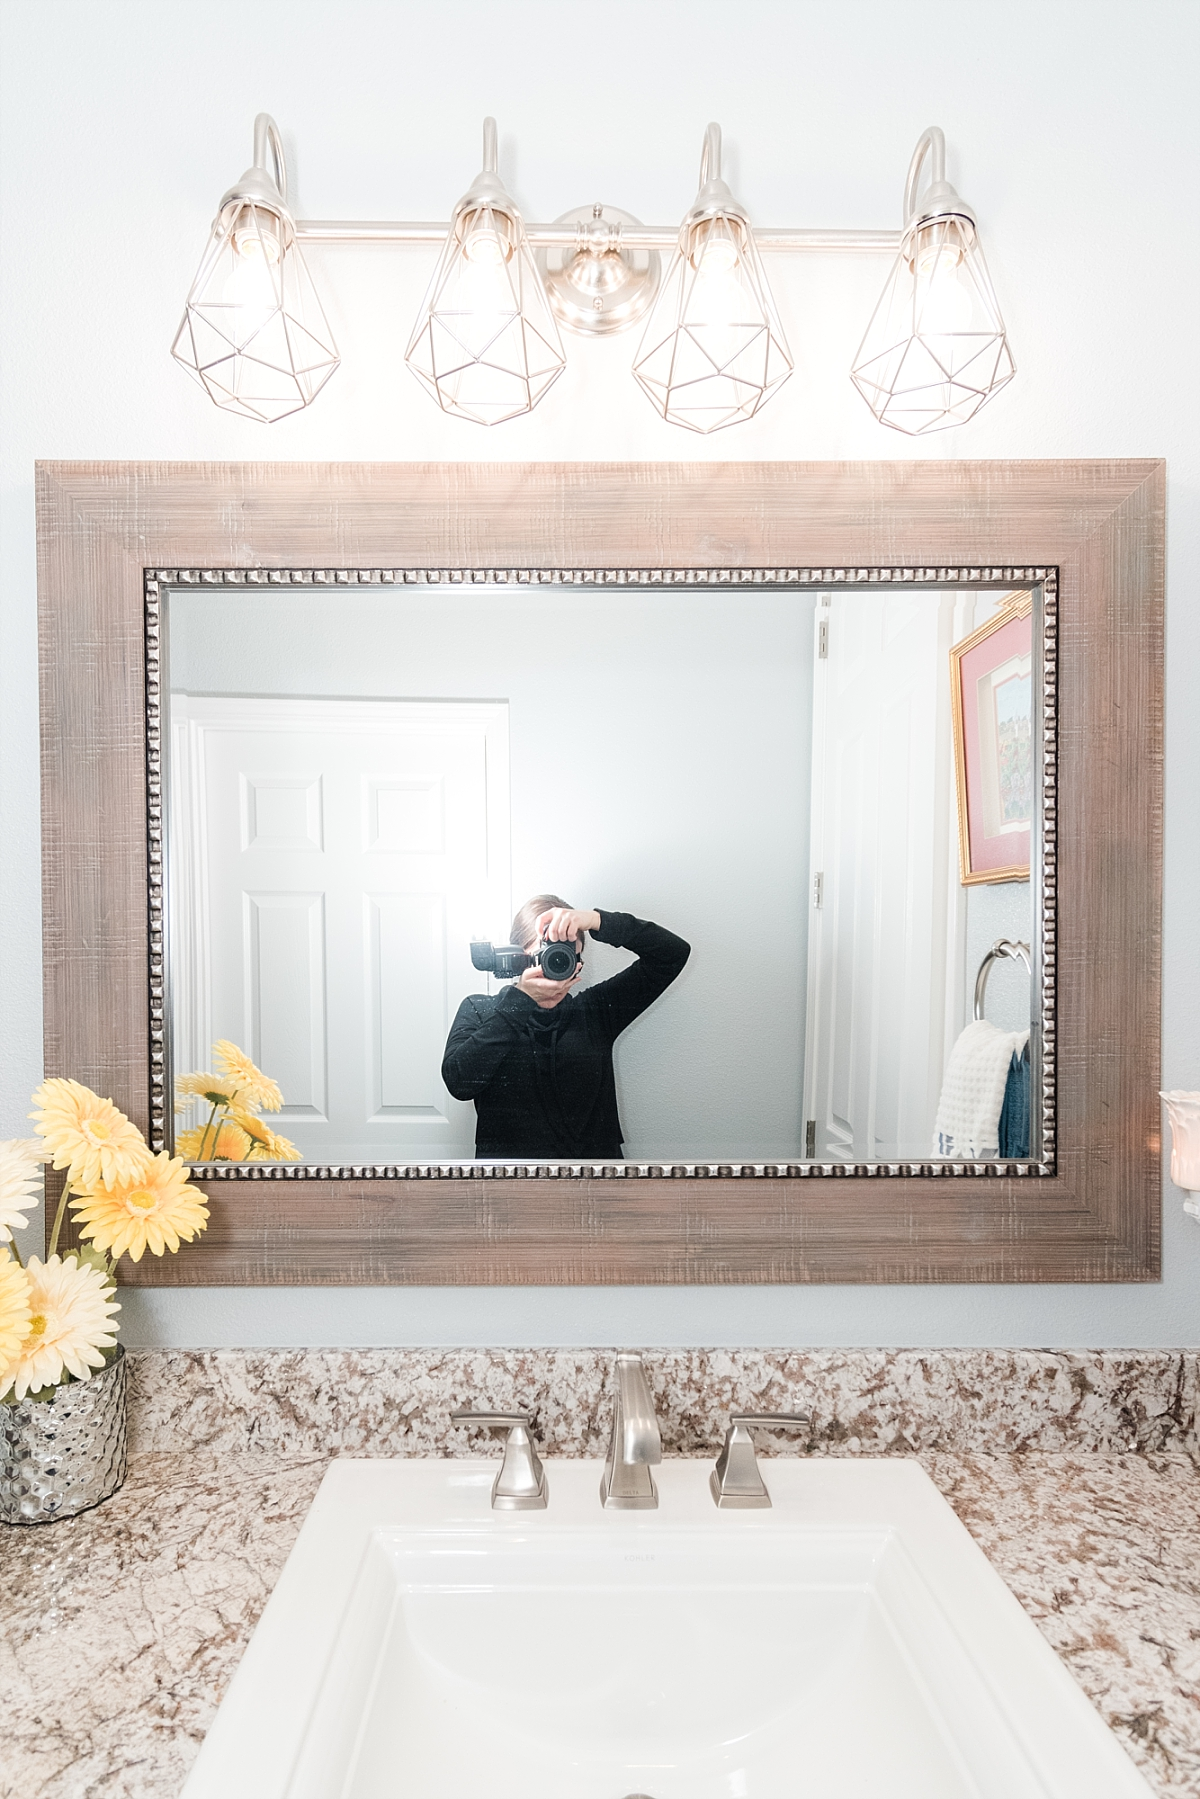 Gotta have a little fun with bathroom mirrors…Right?? :)